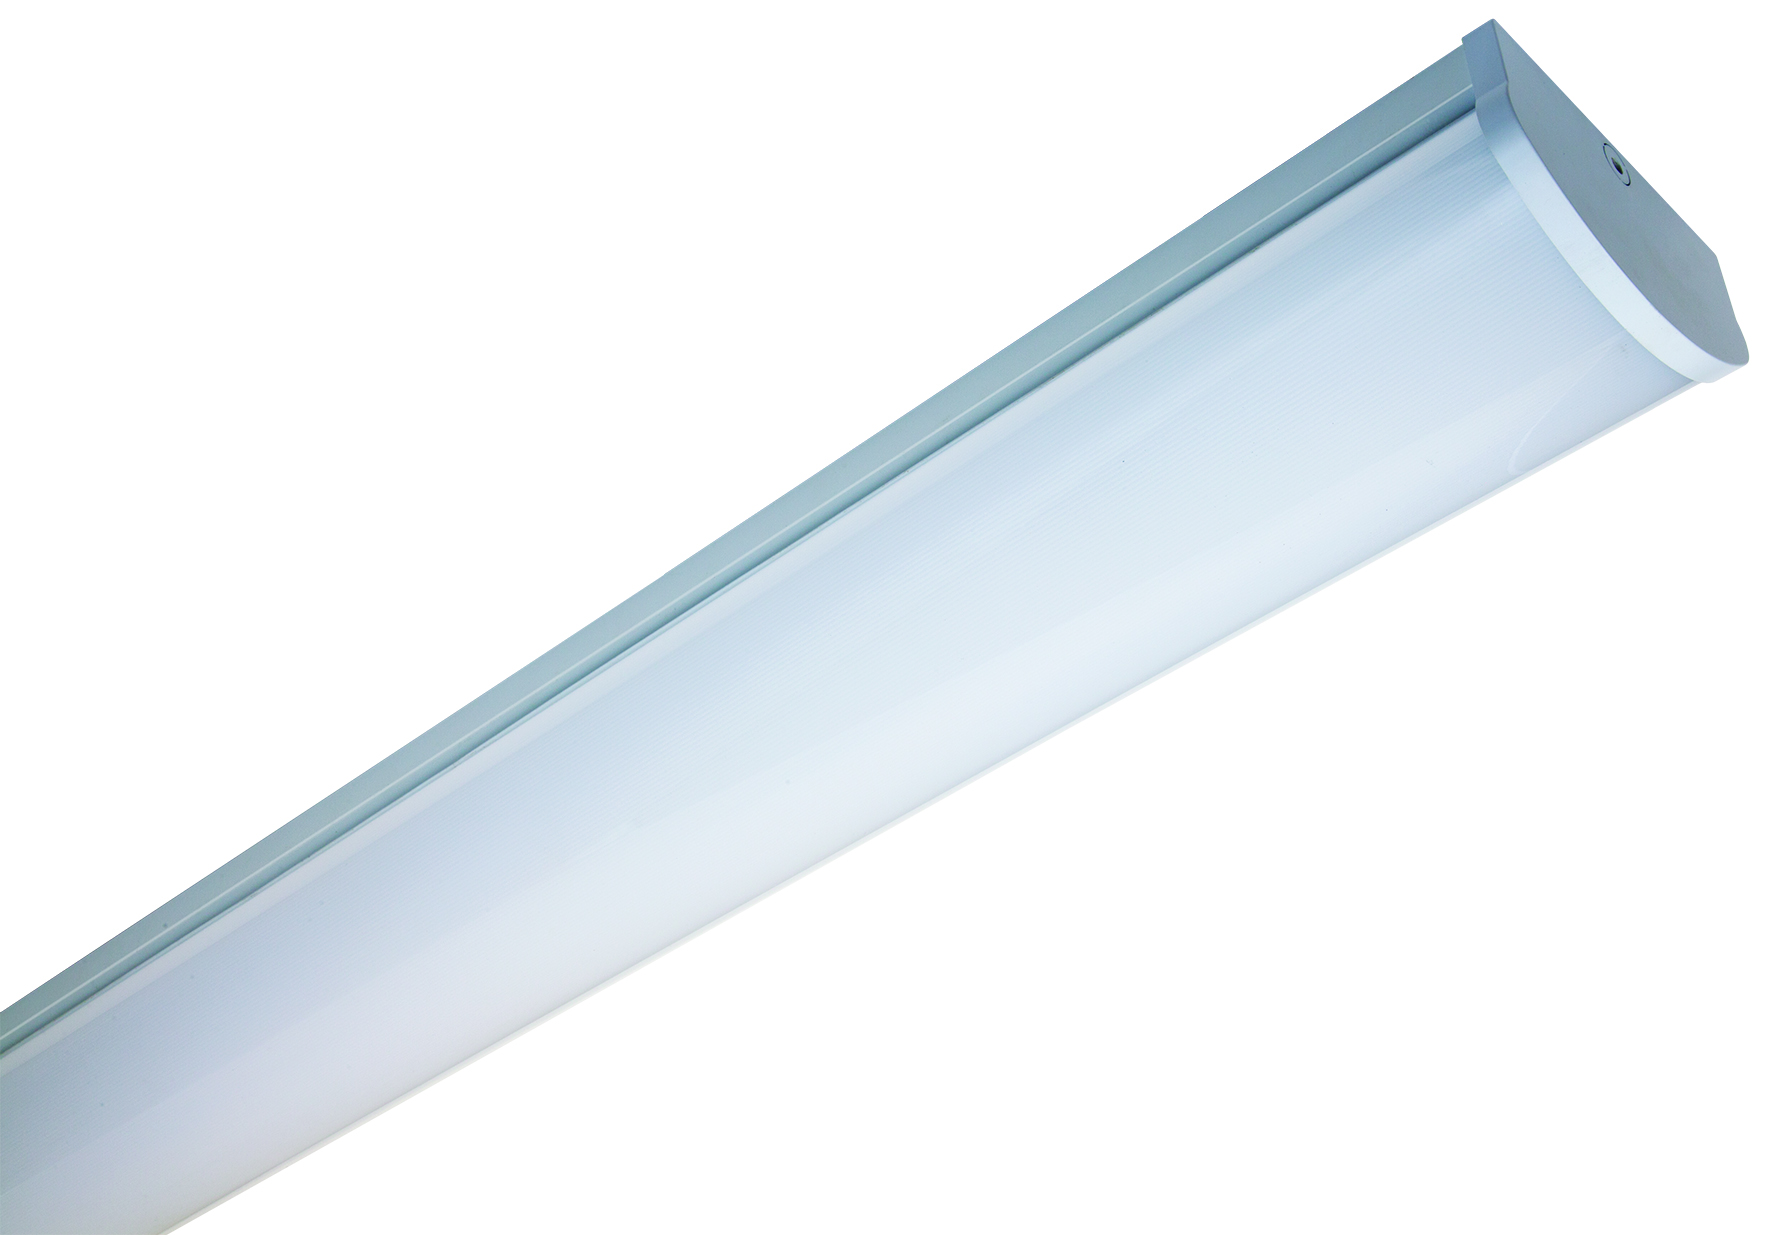 REELTECH curved linear LED strip light dali dimmable emergency 0 10v wireless lighting control